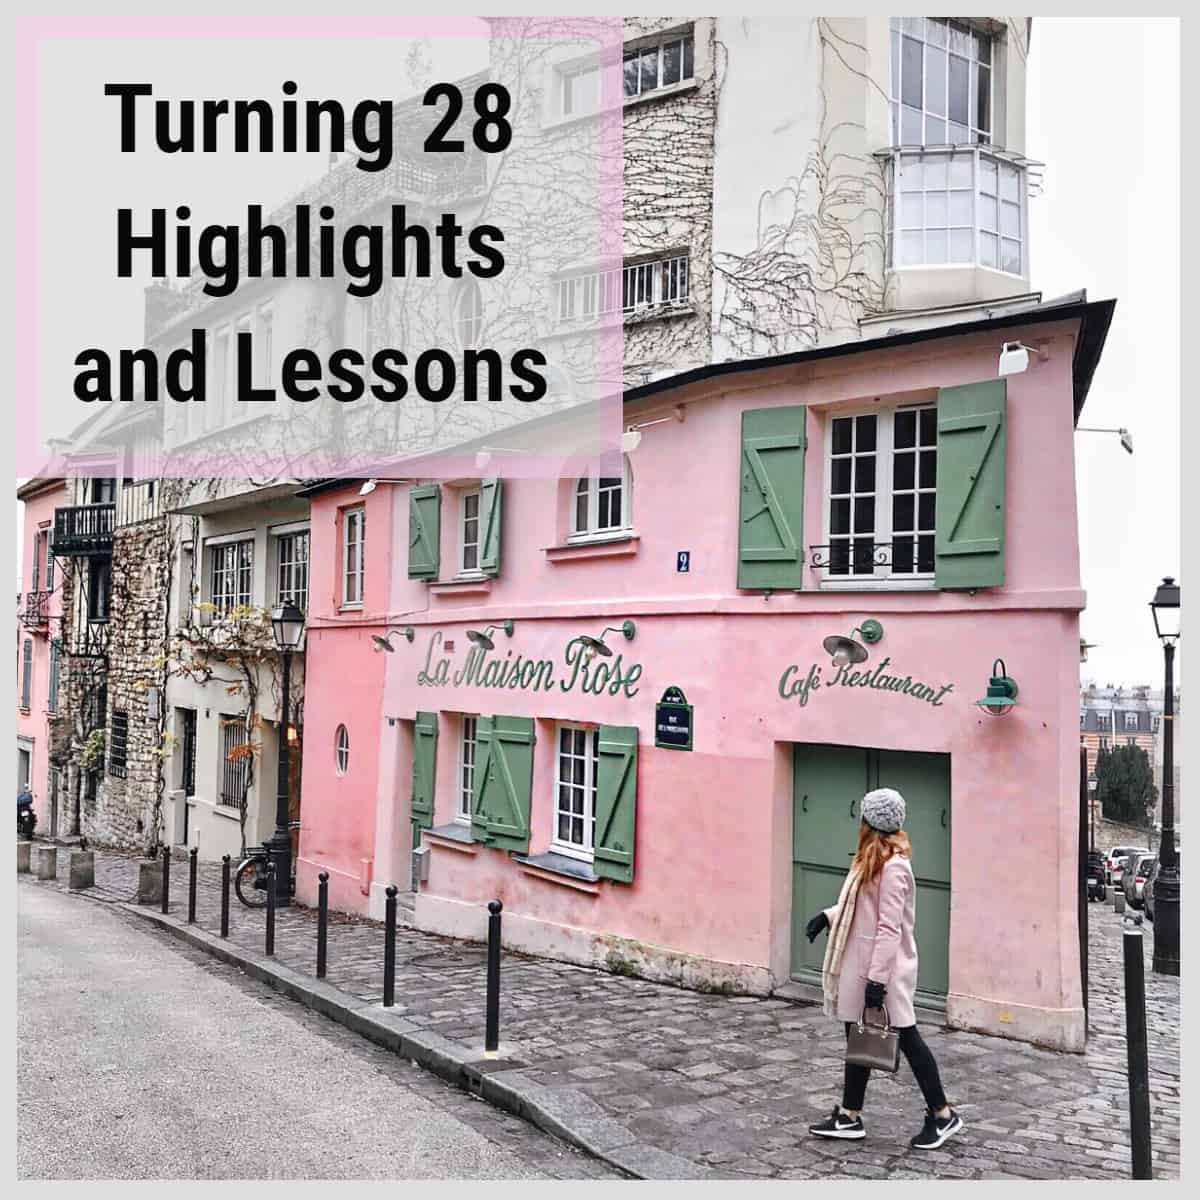 Turning 28 Highlights and Lessons